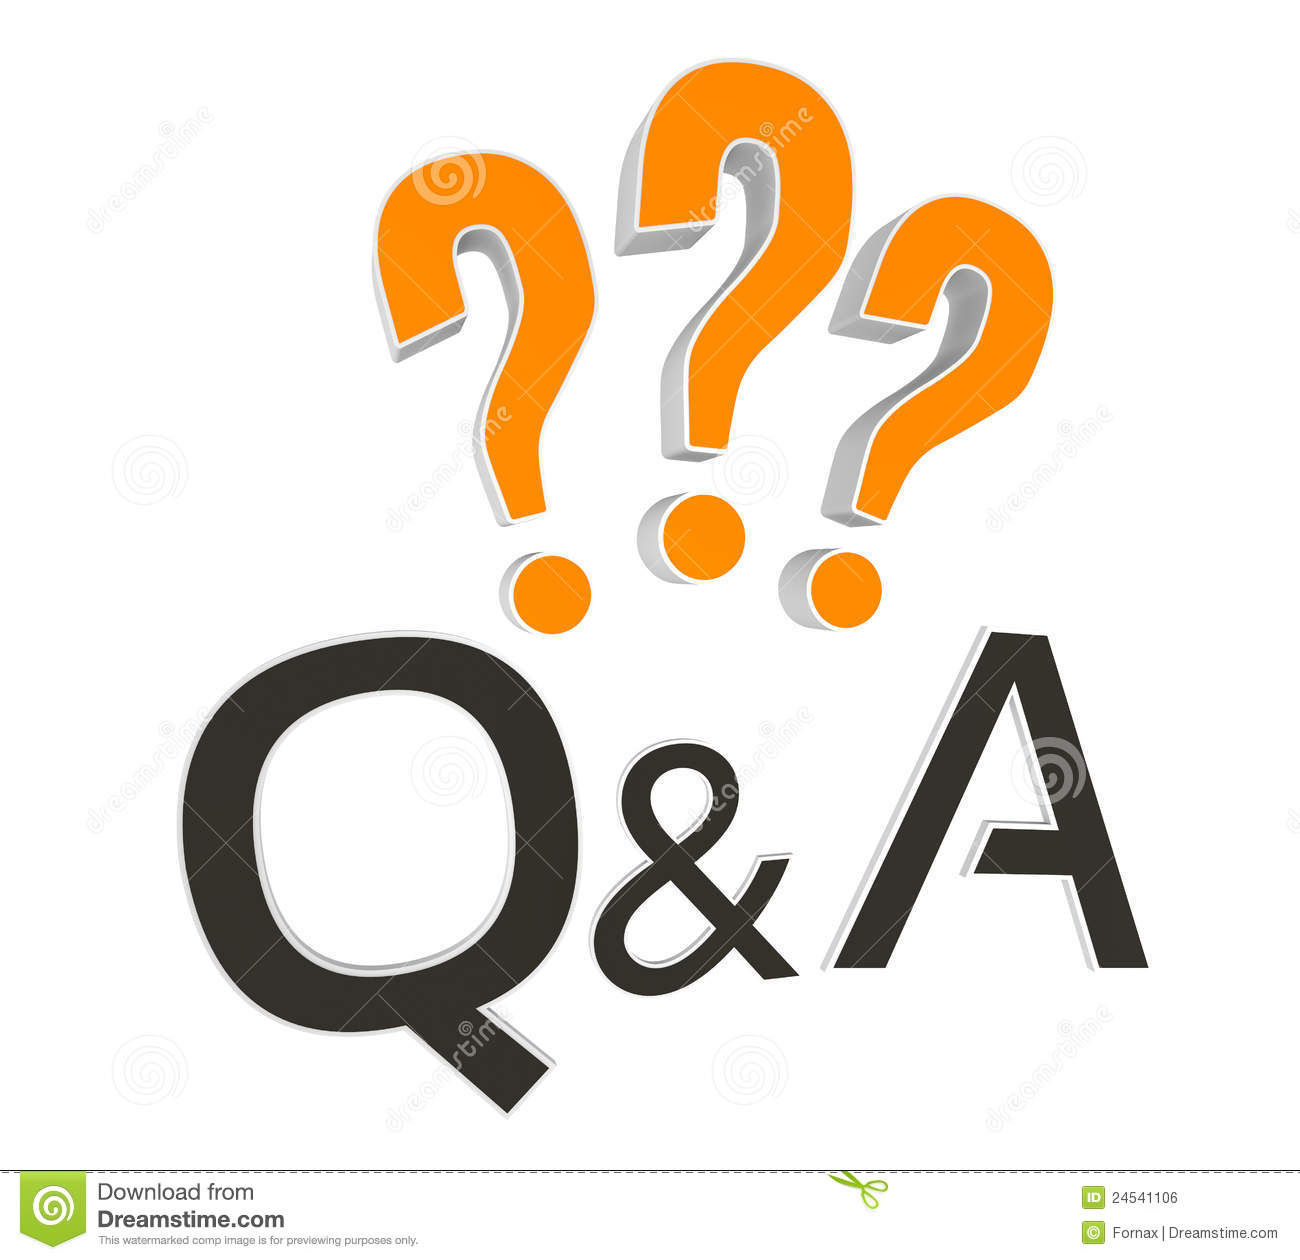 questions animated clip art free - photo #44